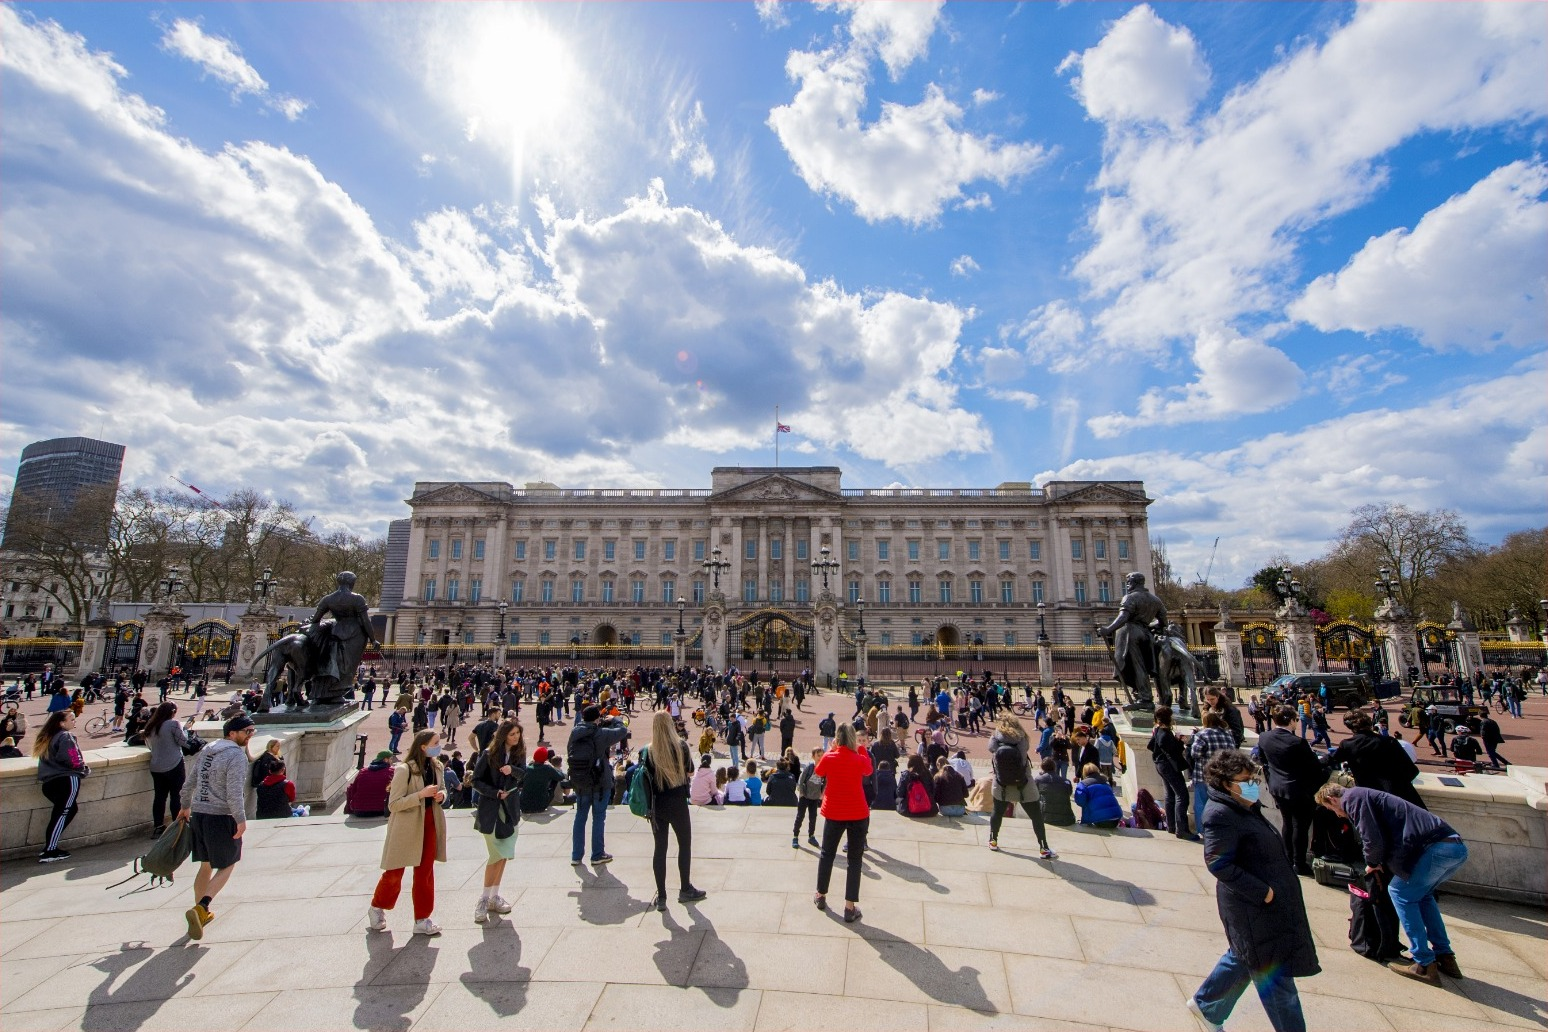 People flock to Buckingham Palace to pay respects to Philip